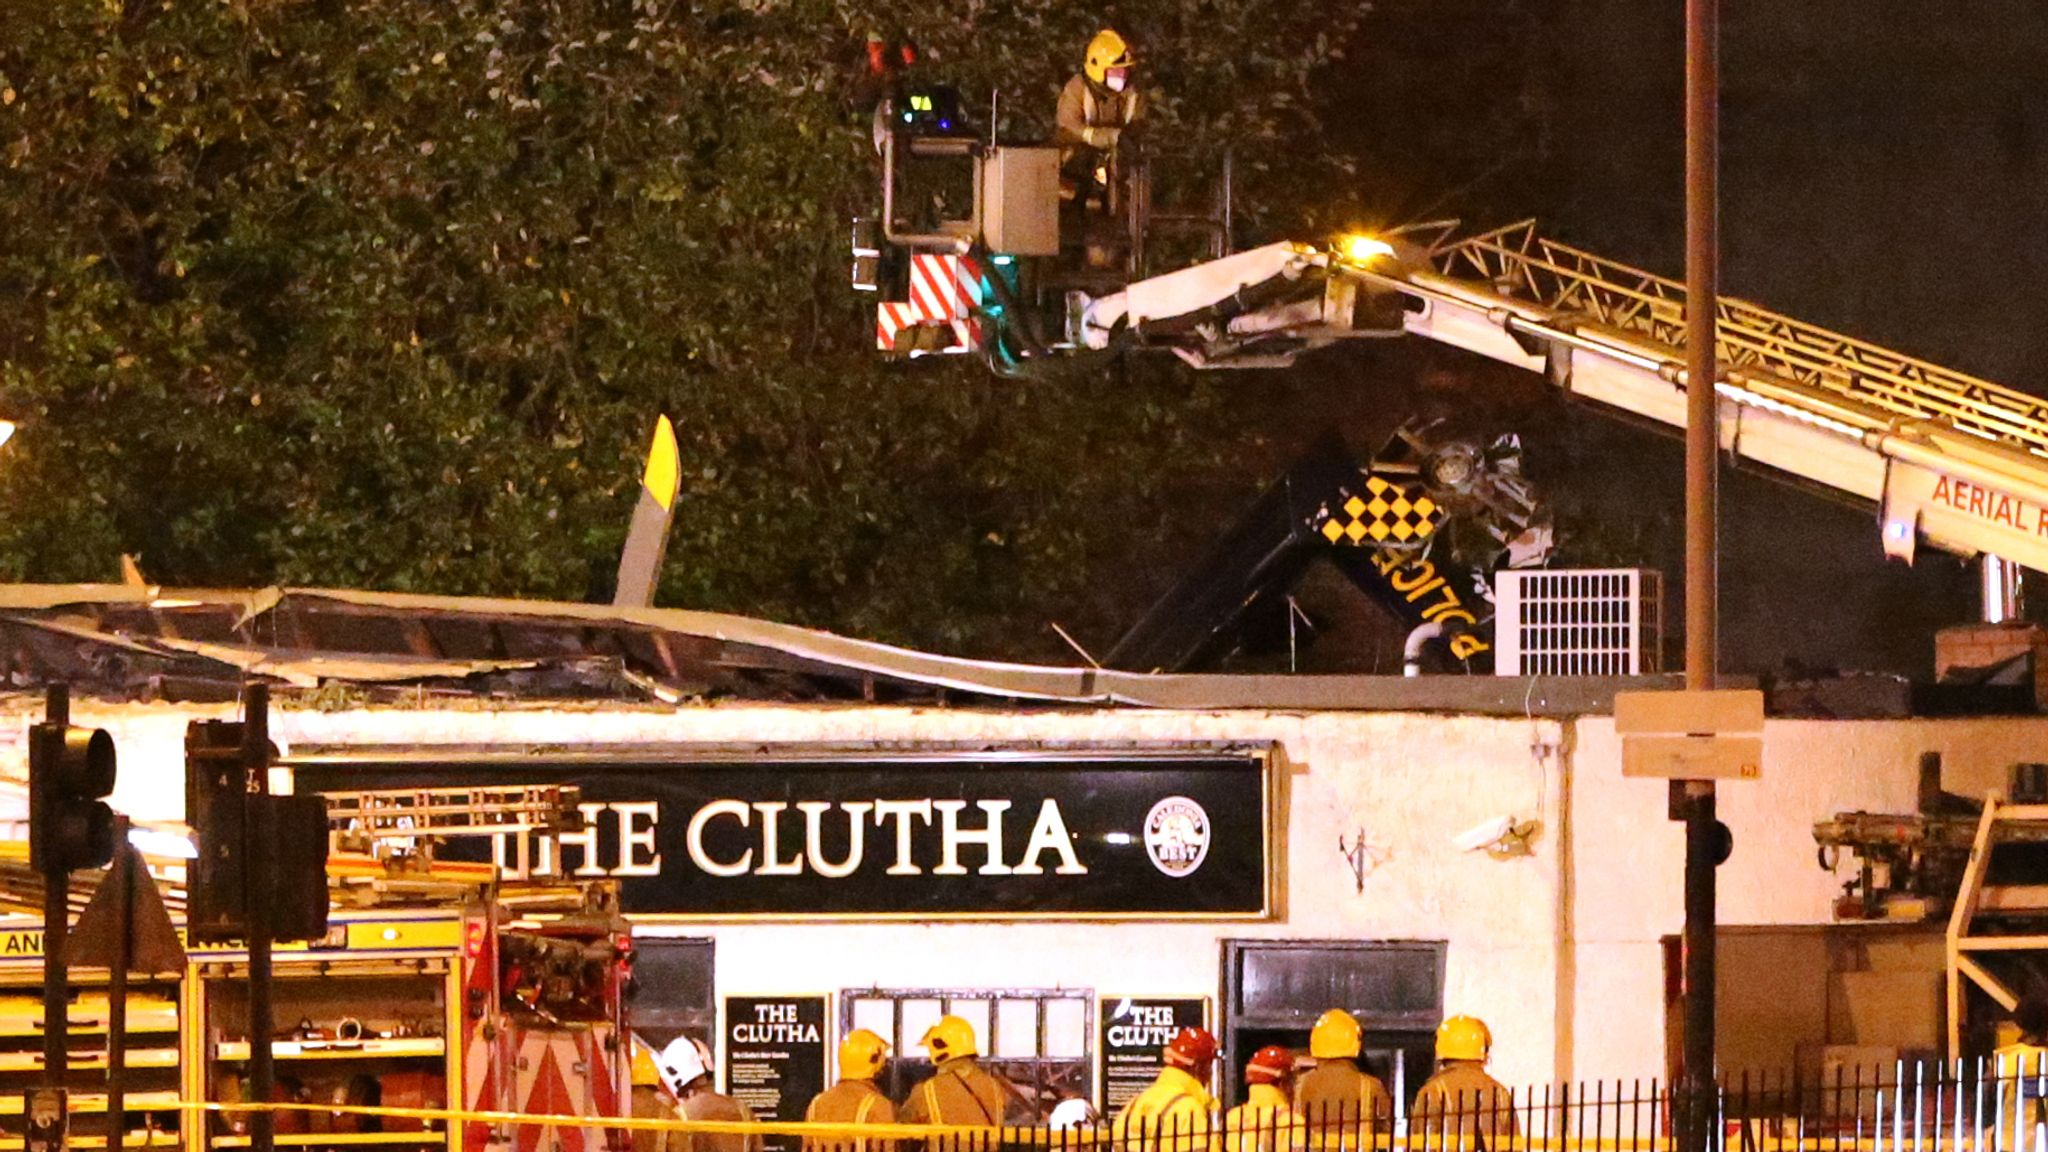 Pilot 'could have prevented' Glasgow helicopter crash which killed 10